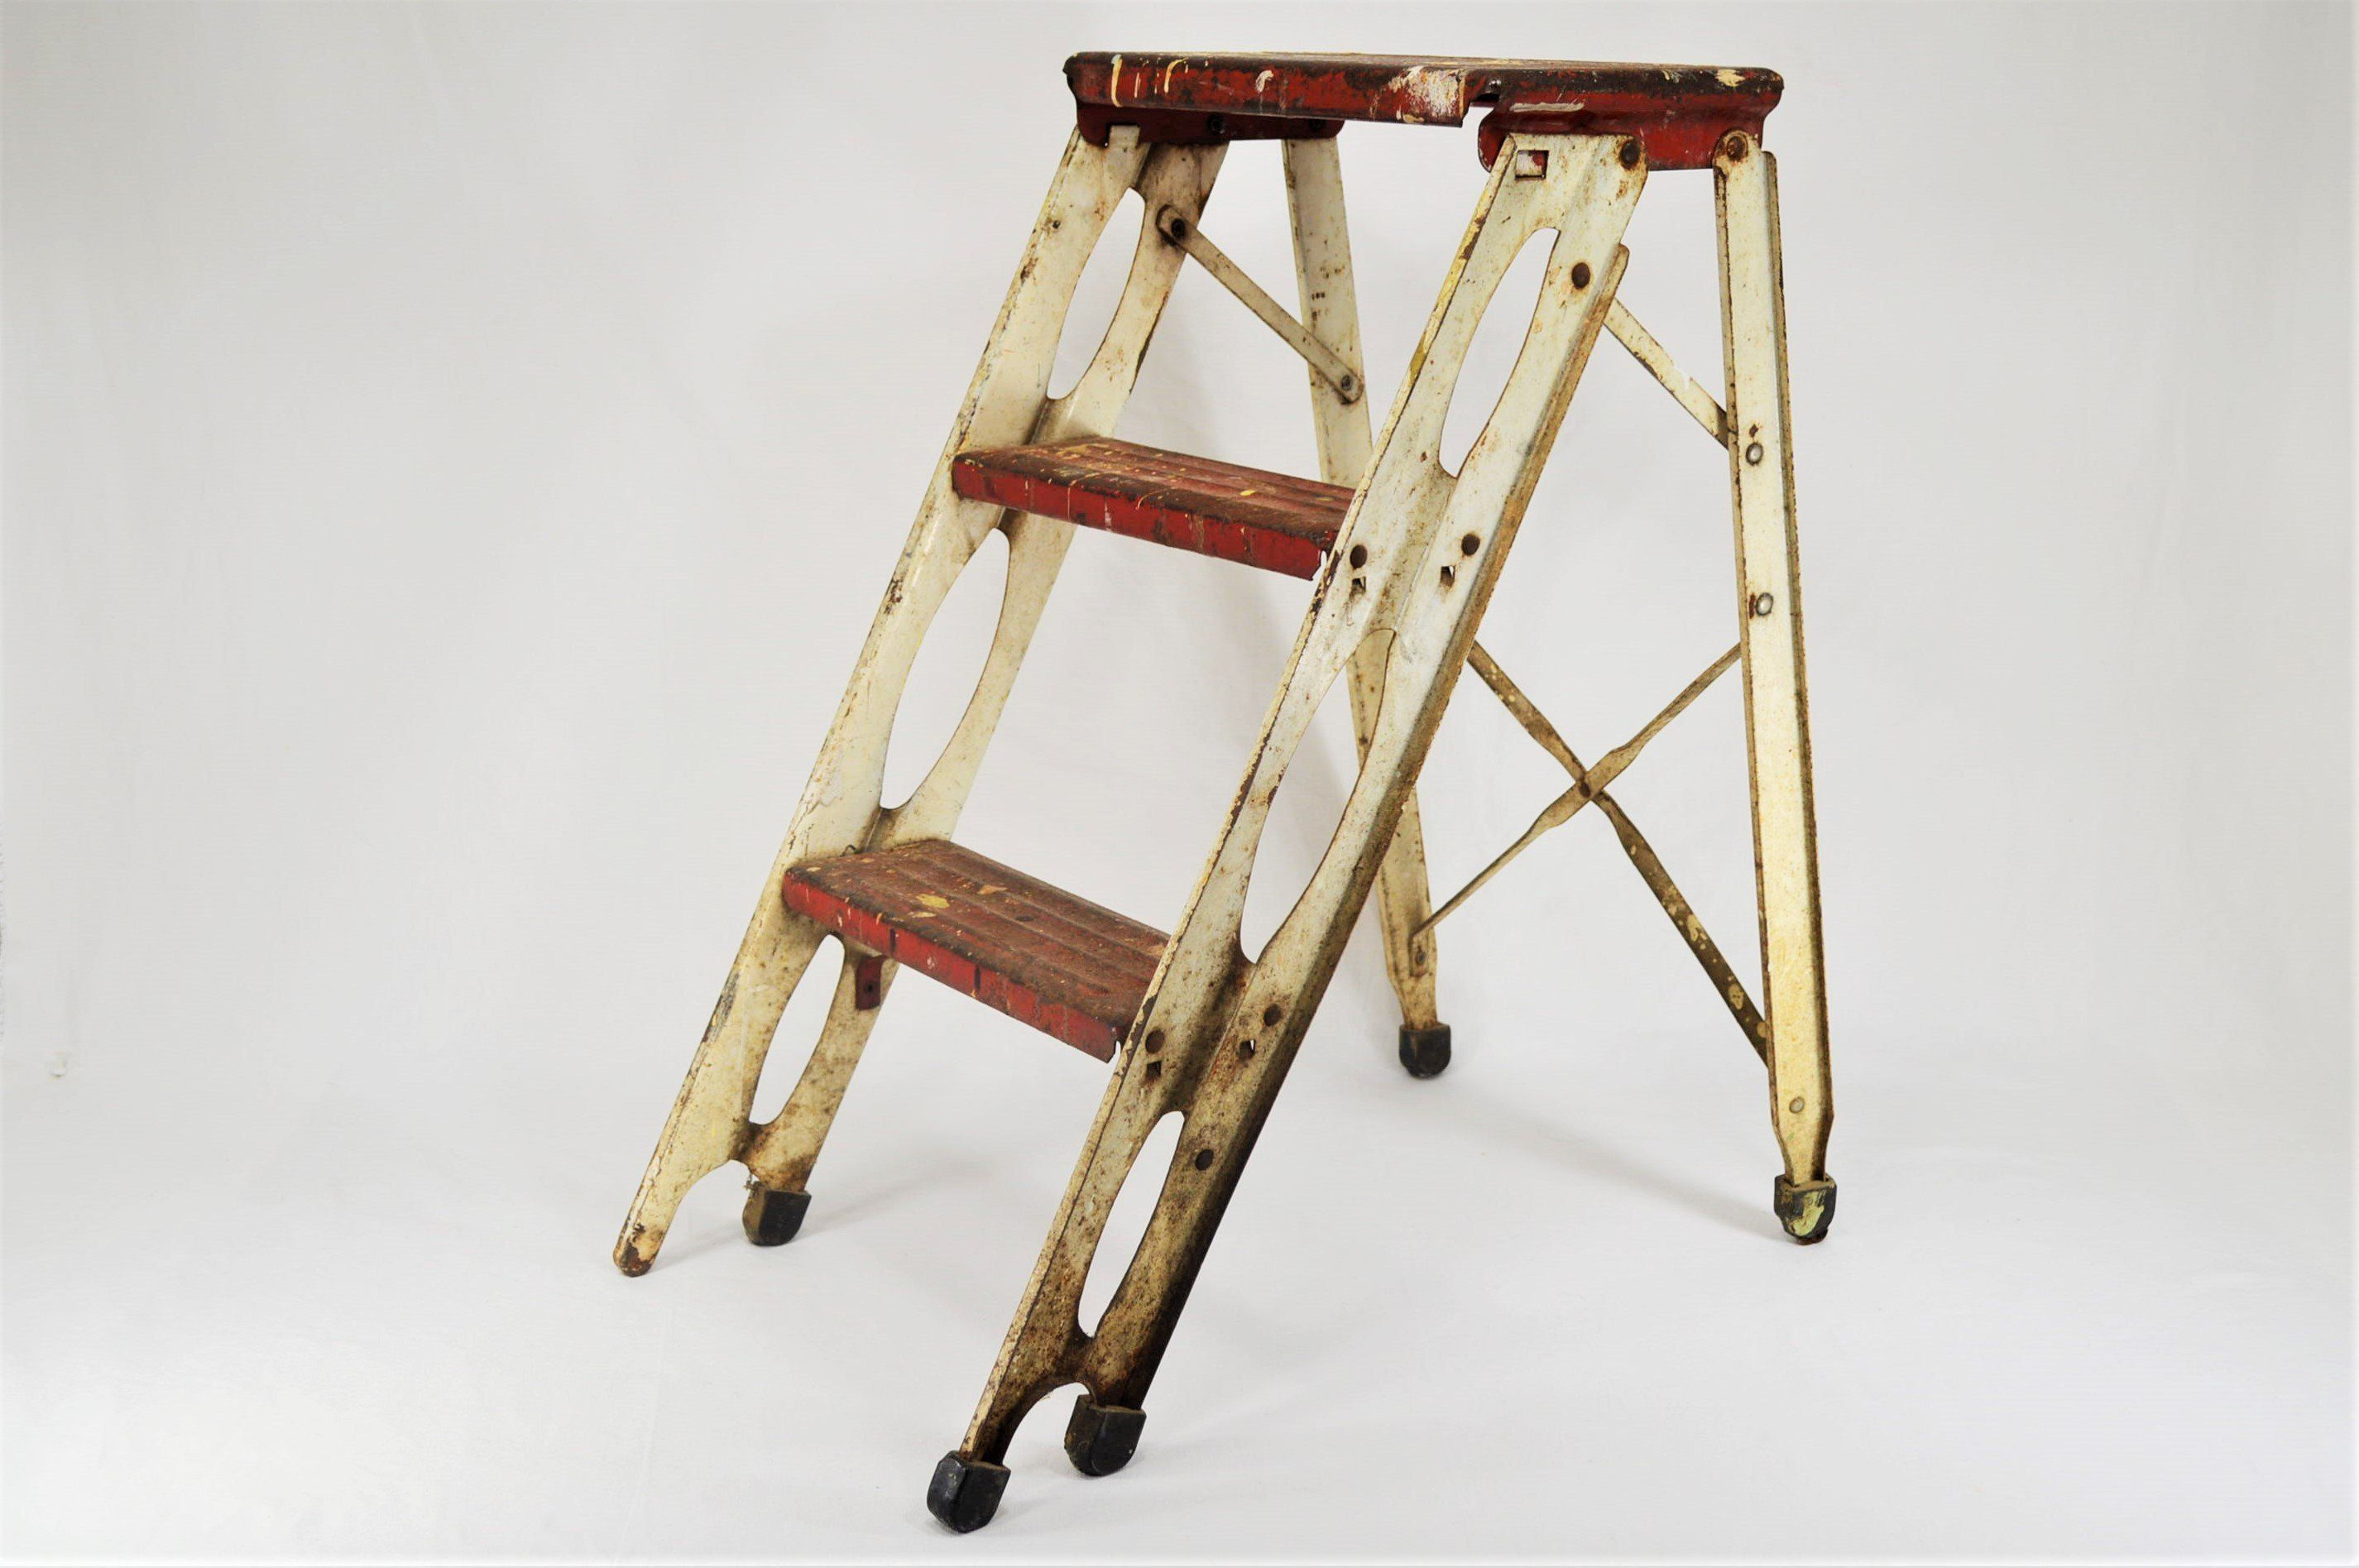 Admirable Vintage Red And White Steal Folding Ladder Or Step Stool 2 Uwap Interior Chair Design Uwaporg